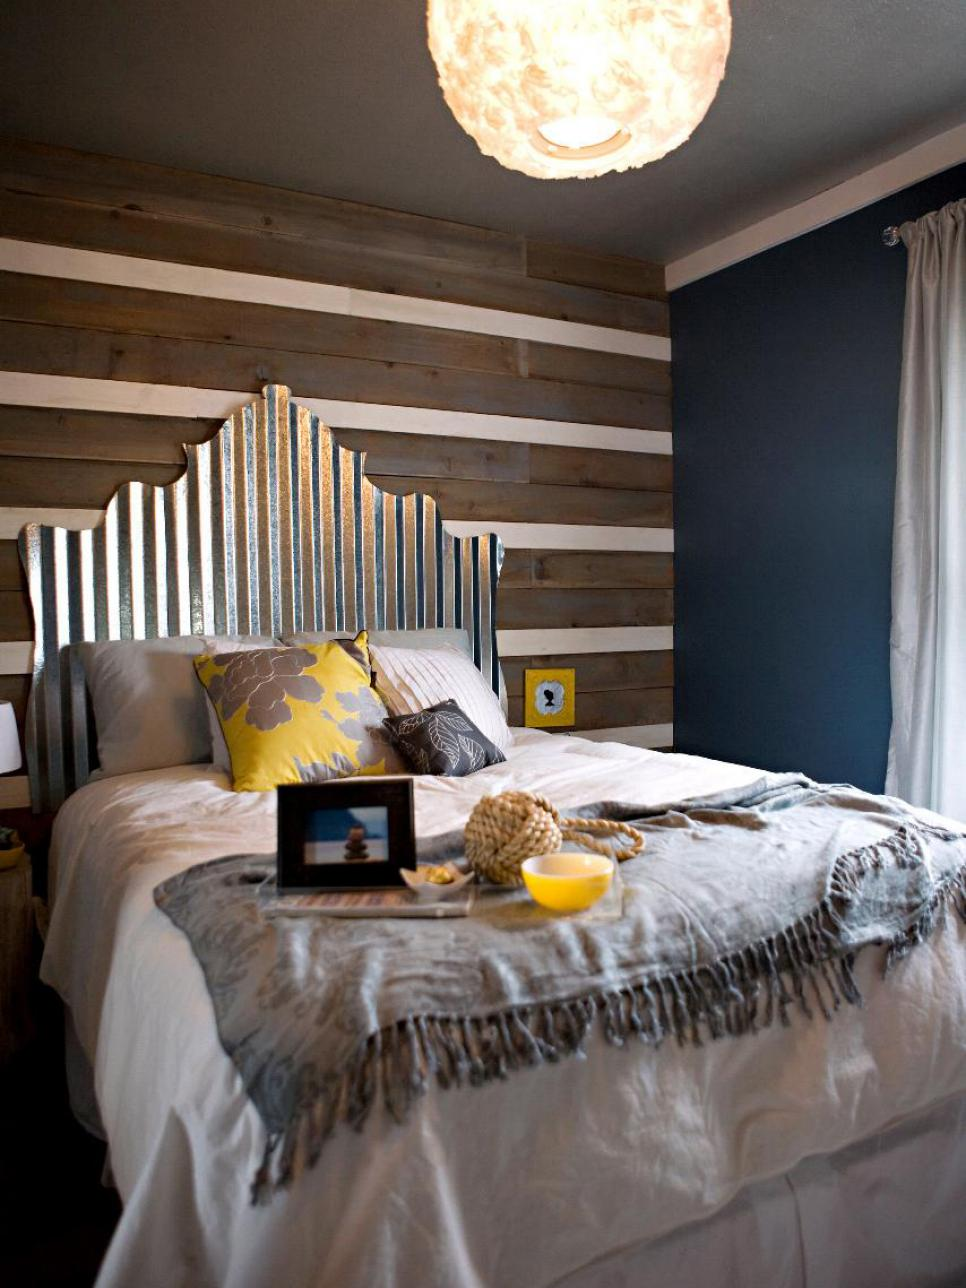 Headboard Ideas creative, upcycled headboard ideas | hgtv